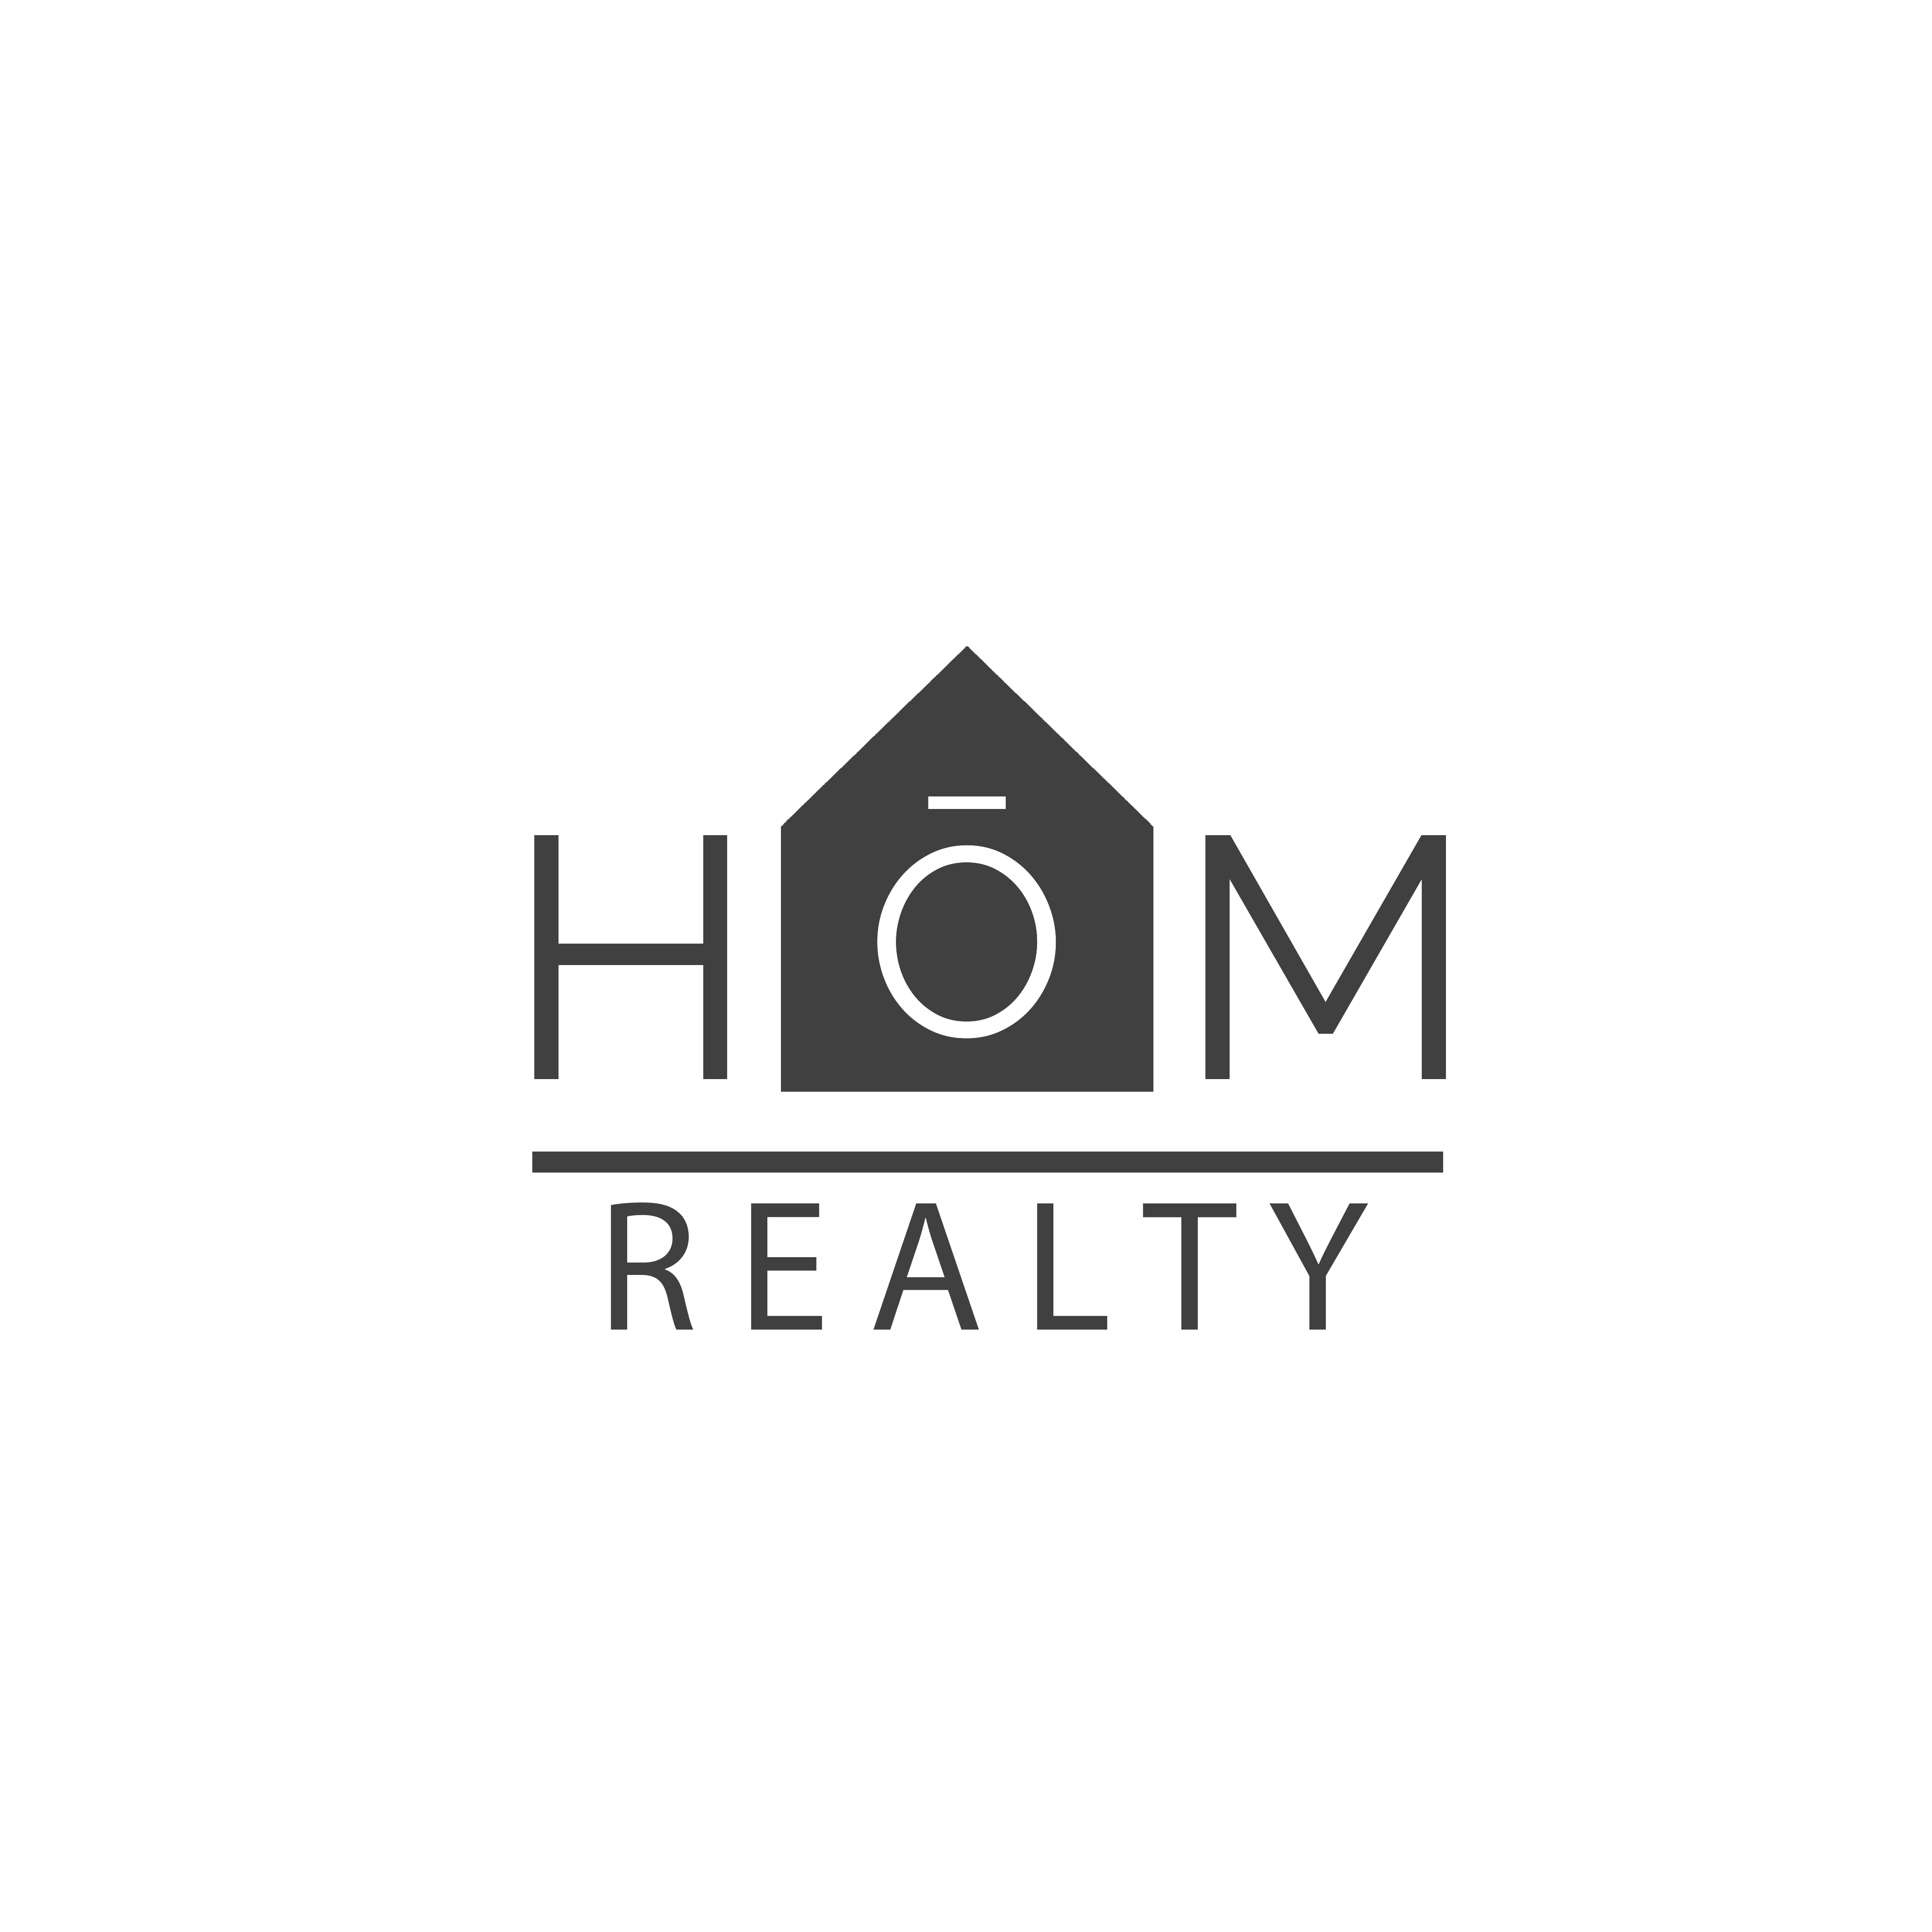 HōM Realty Help Center home page